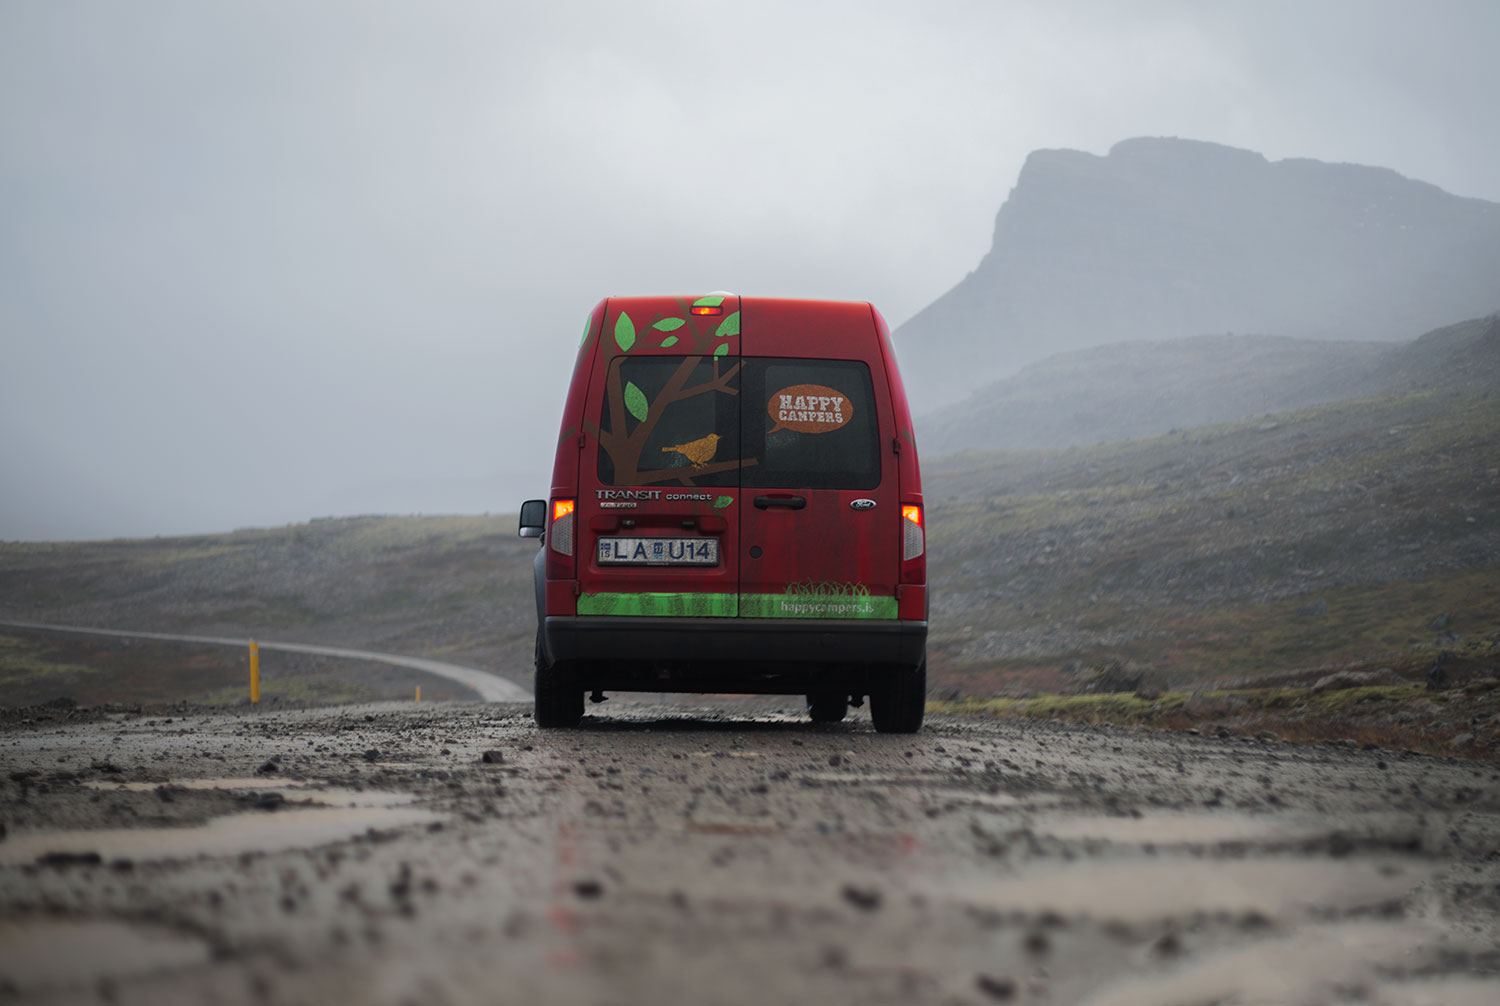 pros-and-cons-of-camper-van-in-iceland, driving in Westfjords, explore Iceland in car, Happy campers, highway 1, Iceland, living in a camper van Iceland, pros and cons of camper van, ring of fire, ring road, sights of Iceland, things to do in Iceland, travel, travel Iceland, travel in camper van